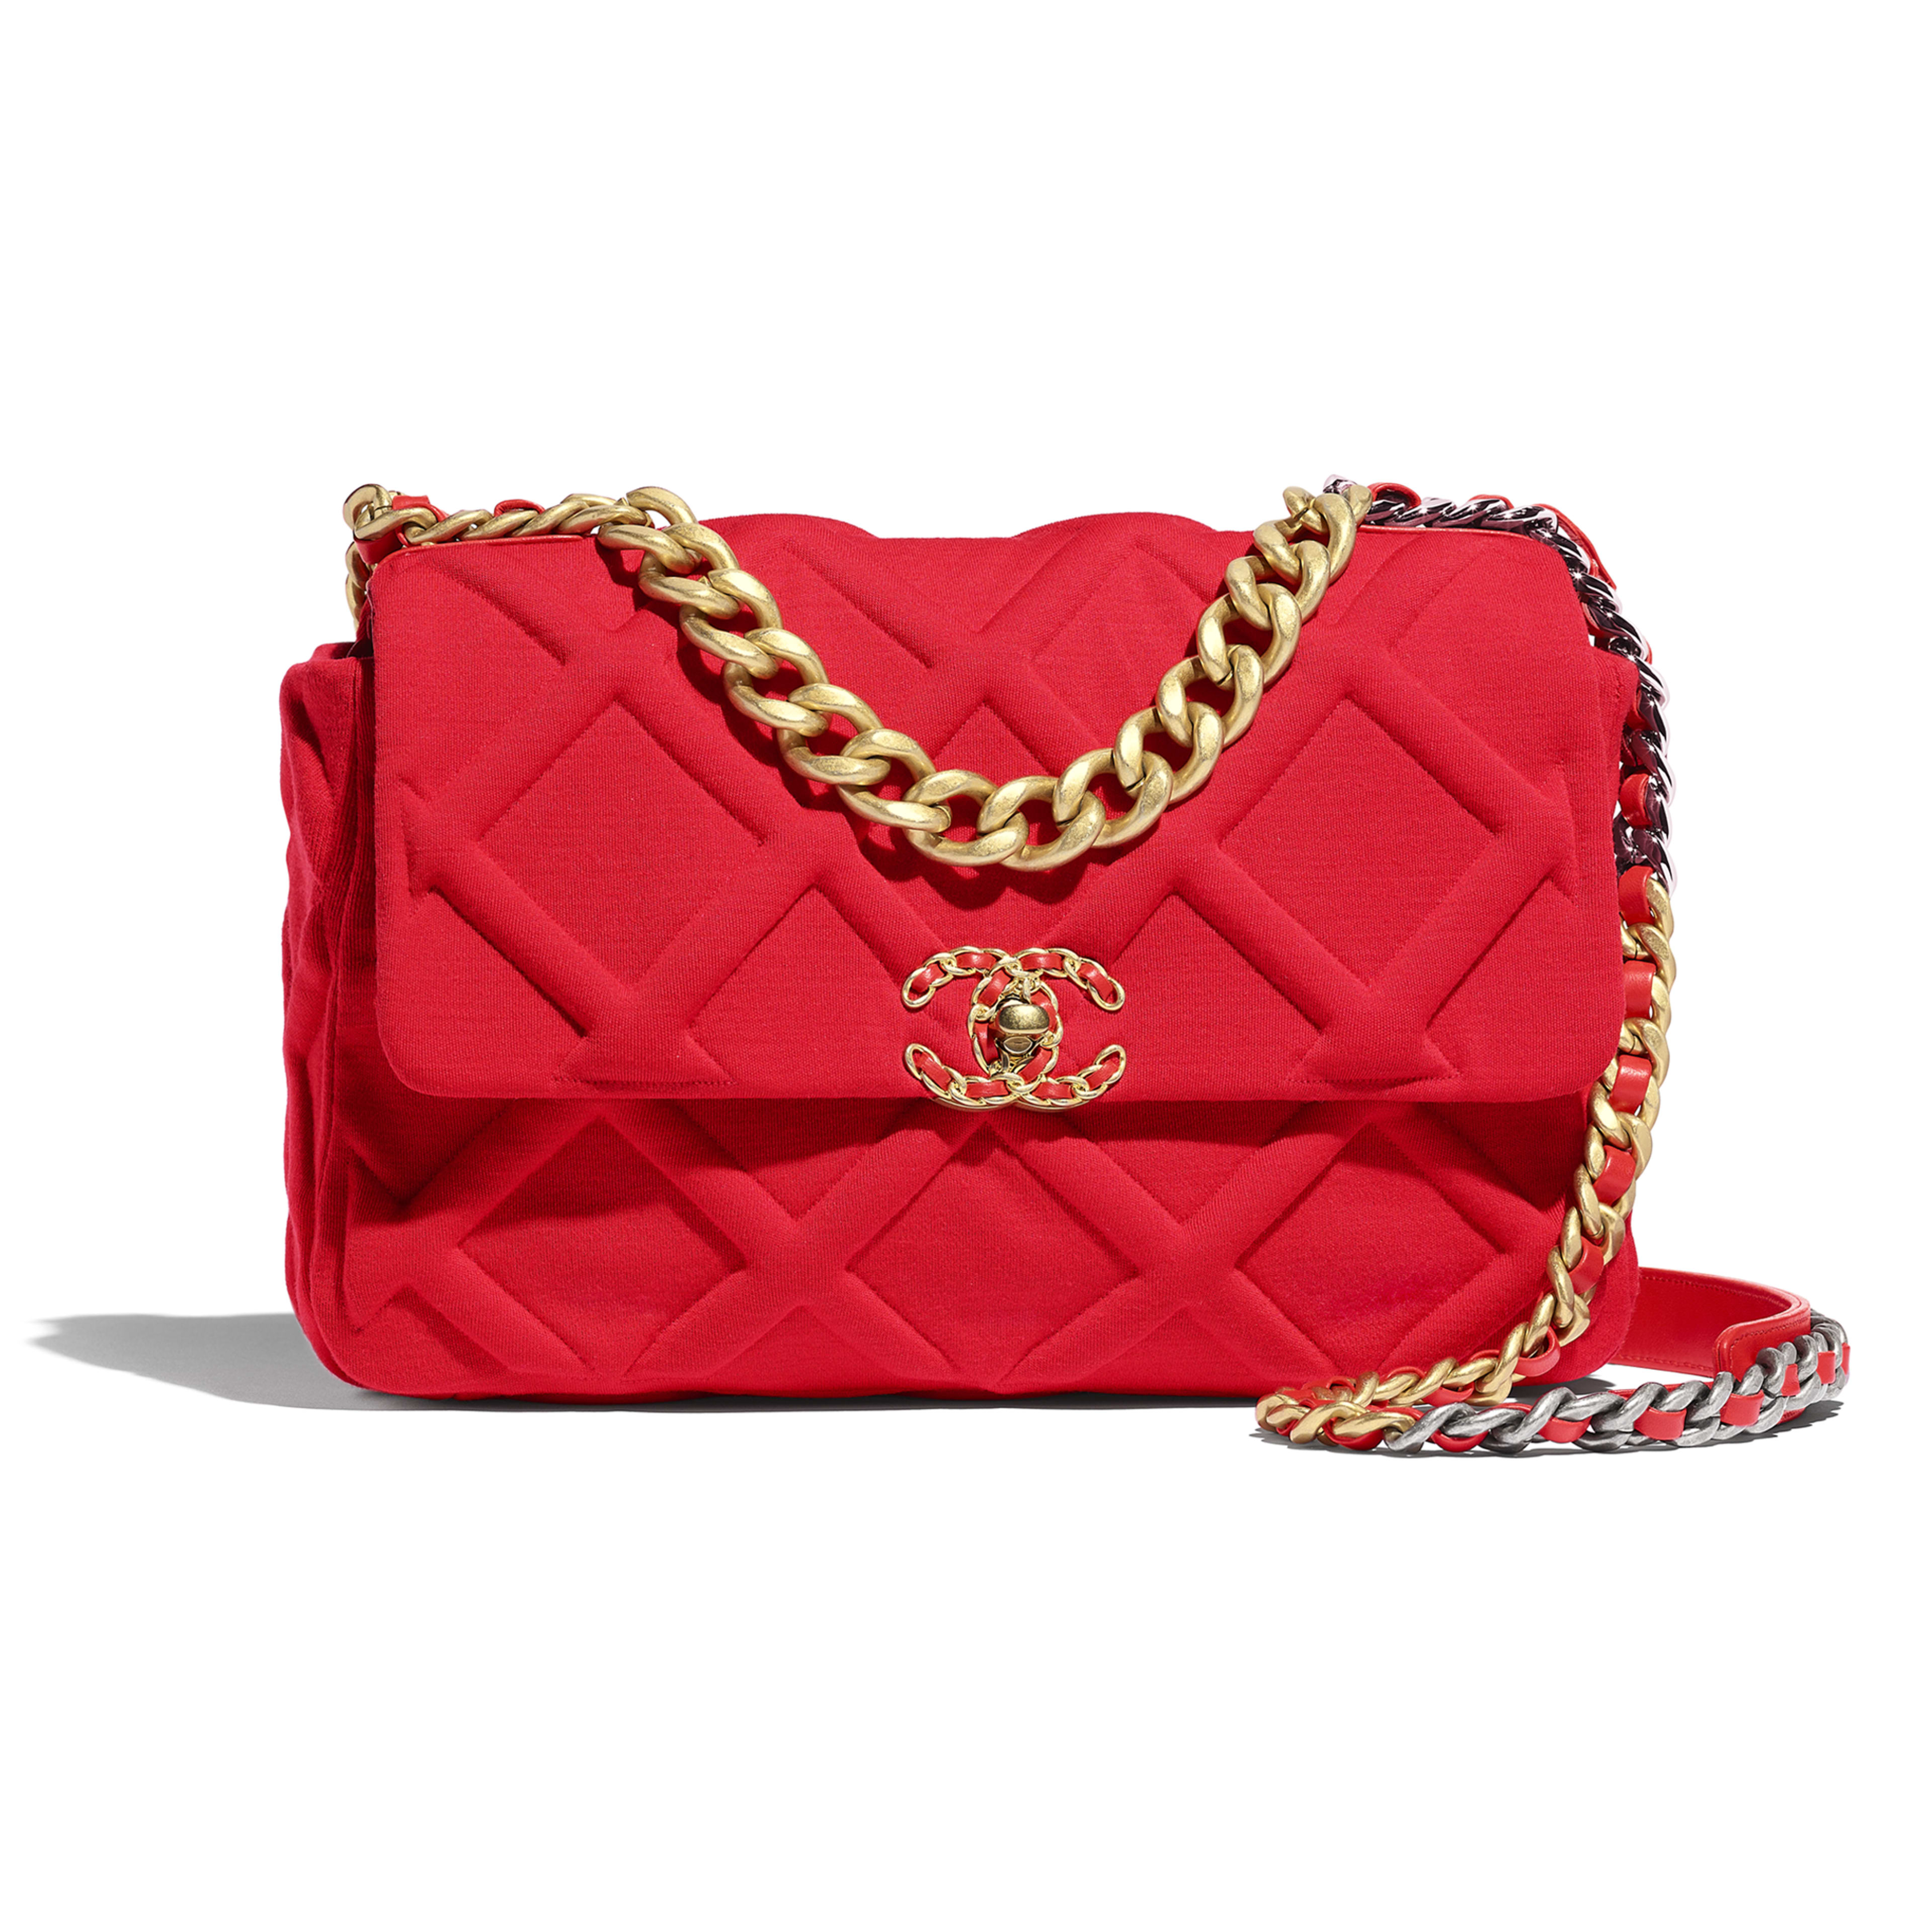 CHANEL 19 Large Flap Bag - Red - Jersey, Gold-Tone, Silver-Tone & Ruthenium-Finish Metal - Default view - see full sized version